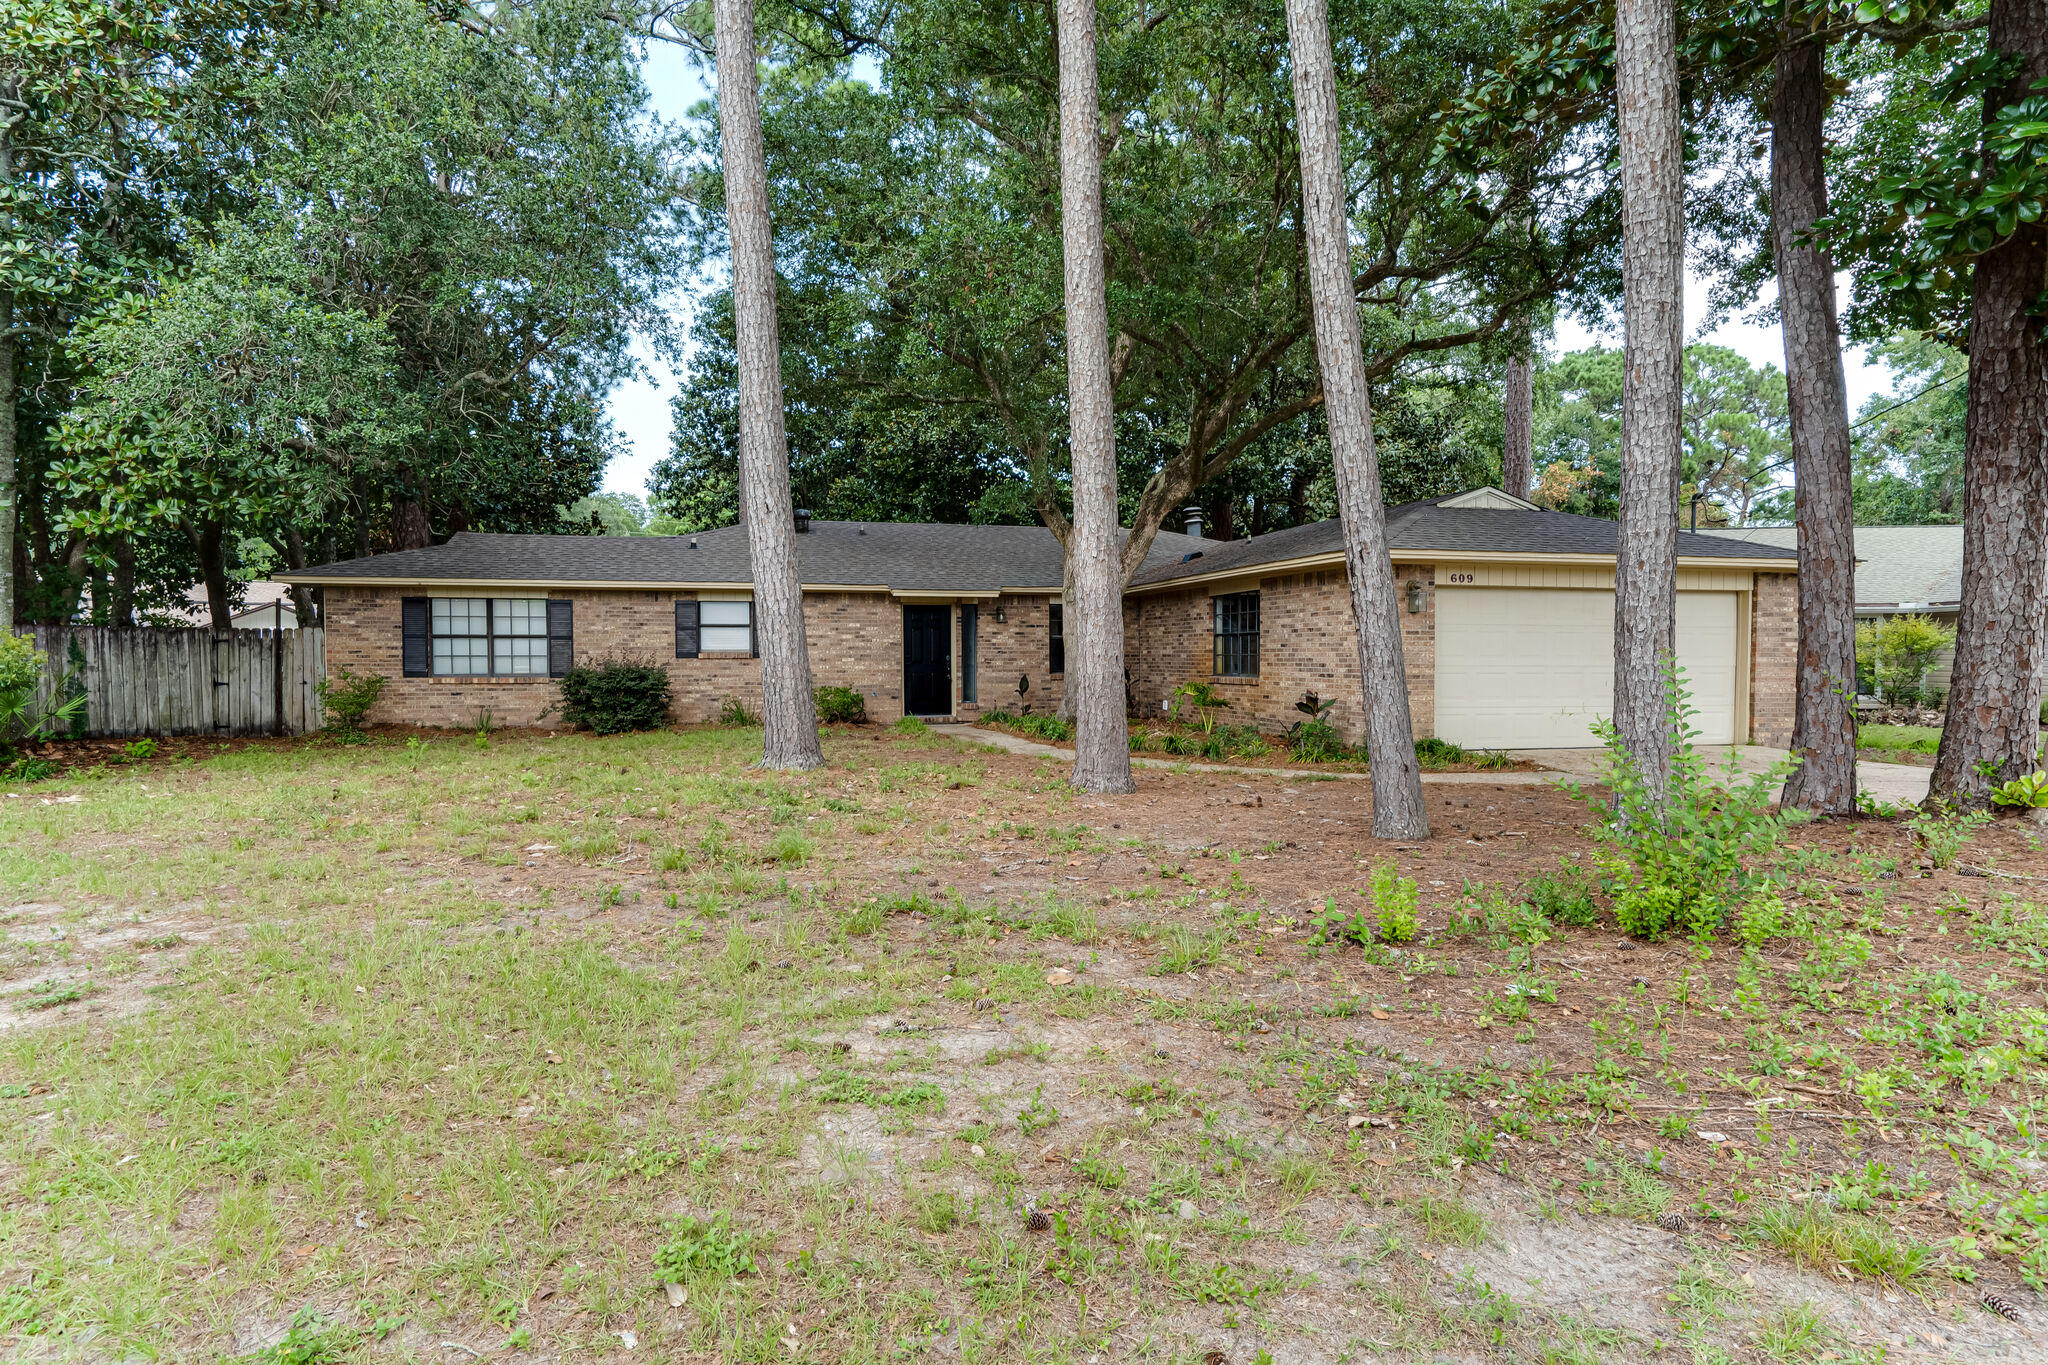 Photo of home for sale at 609 Pinecone, Niceville FL